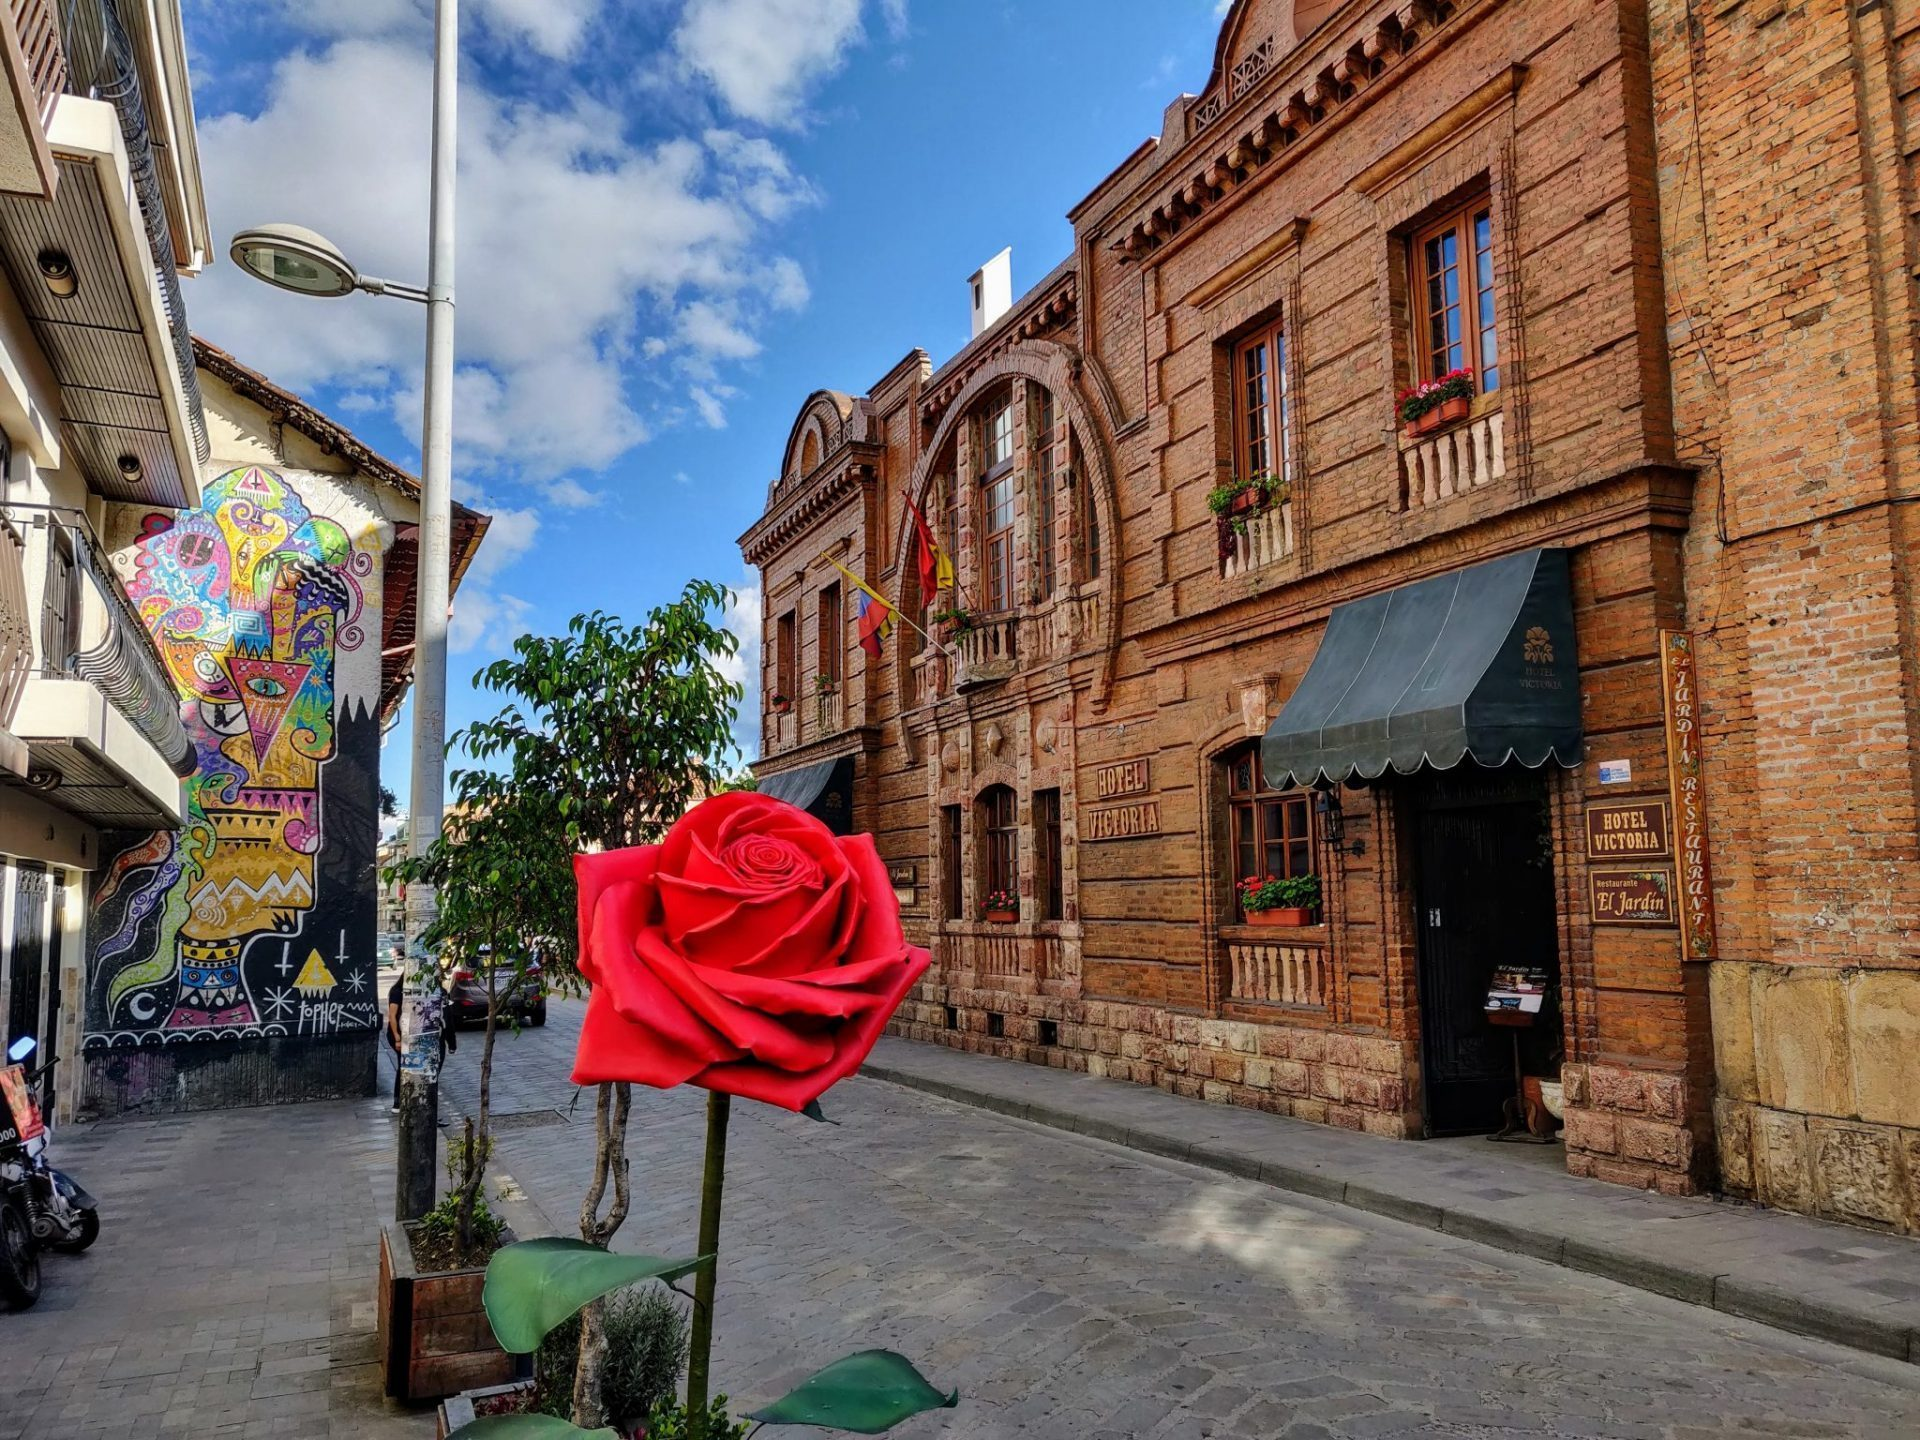 Cuenca city street with rose sculpture